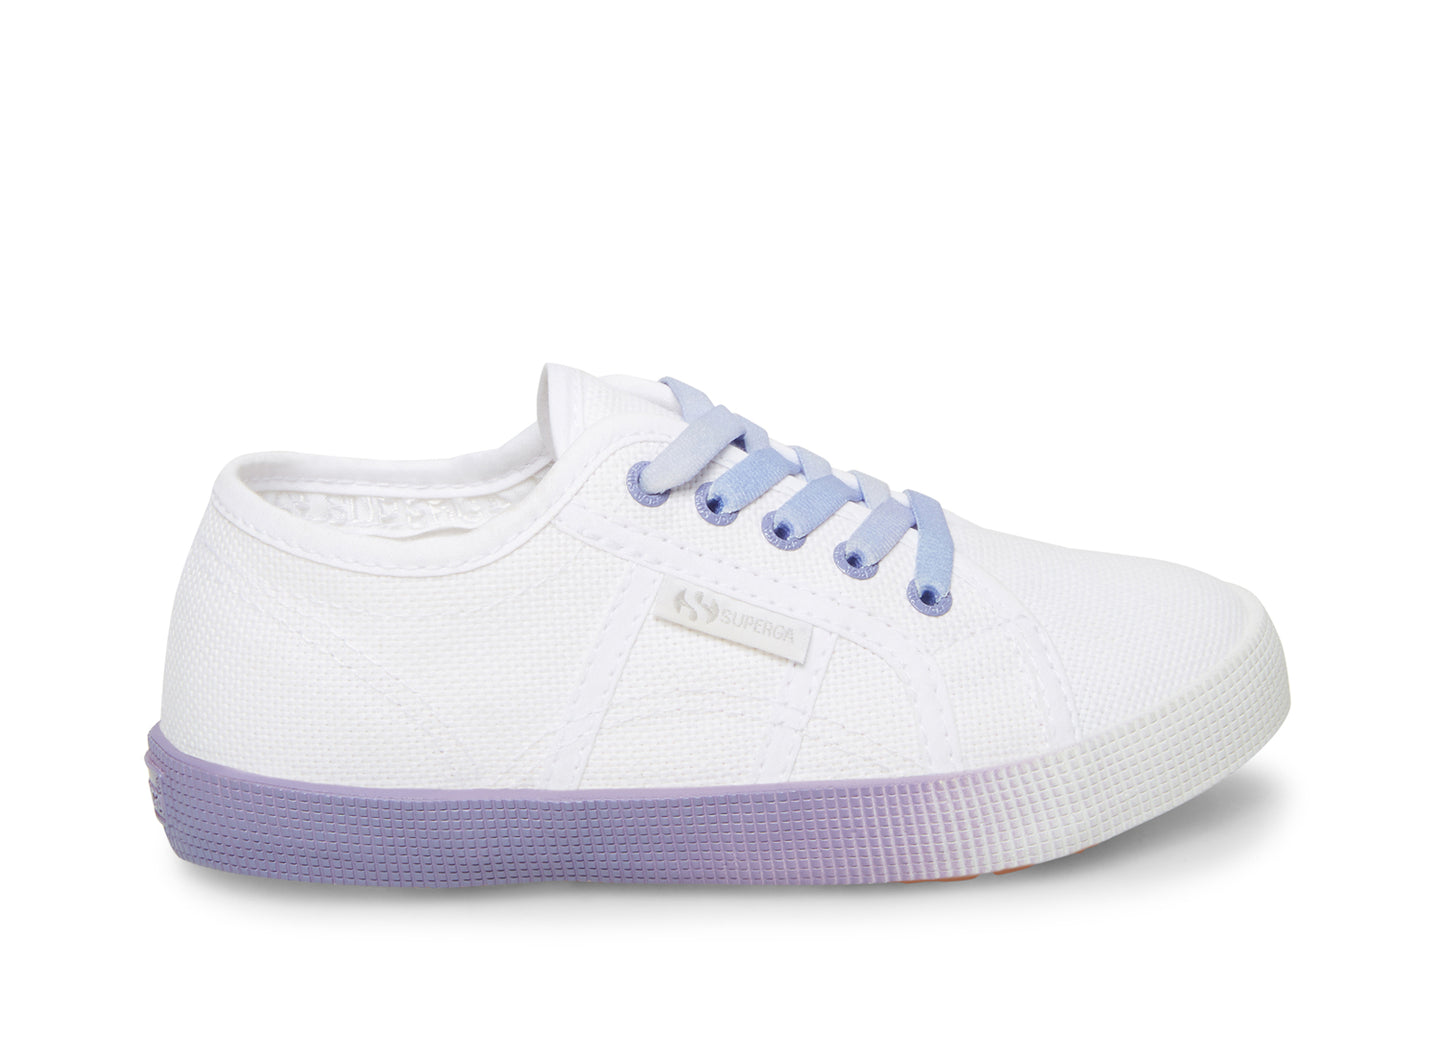 2750 COTBUMPERGRADIENTJ WHITE-LAVENDER - Kids